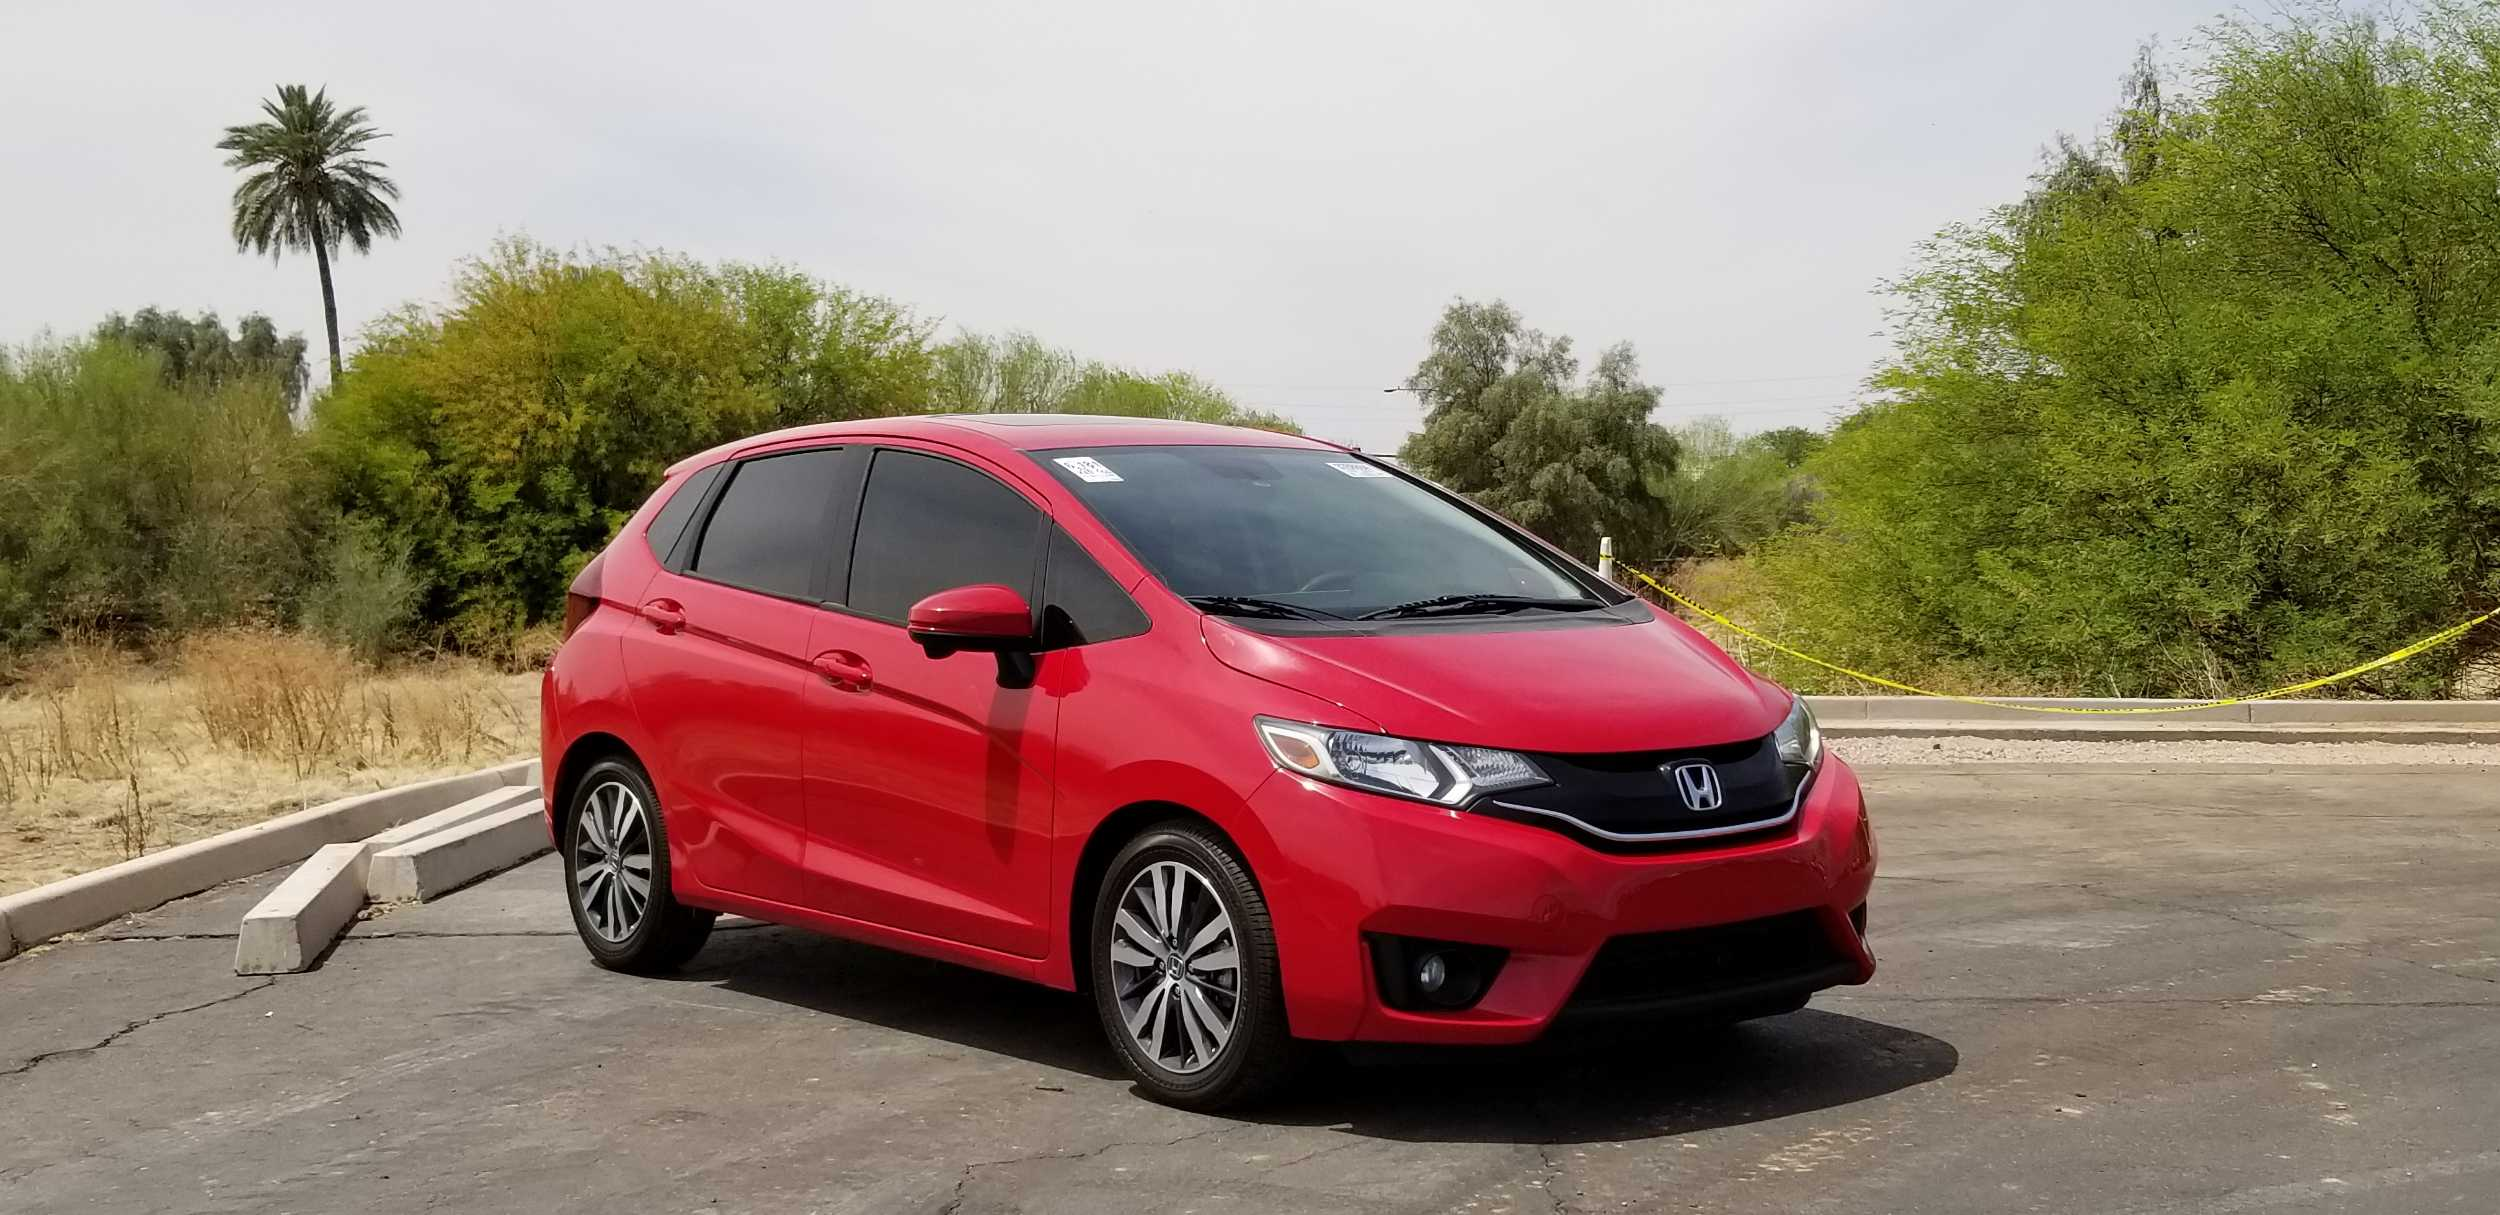 Coeur D Alene Honda | Top Car Reviews 2019 2020 on